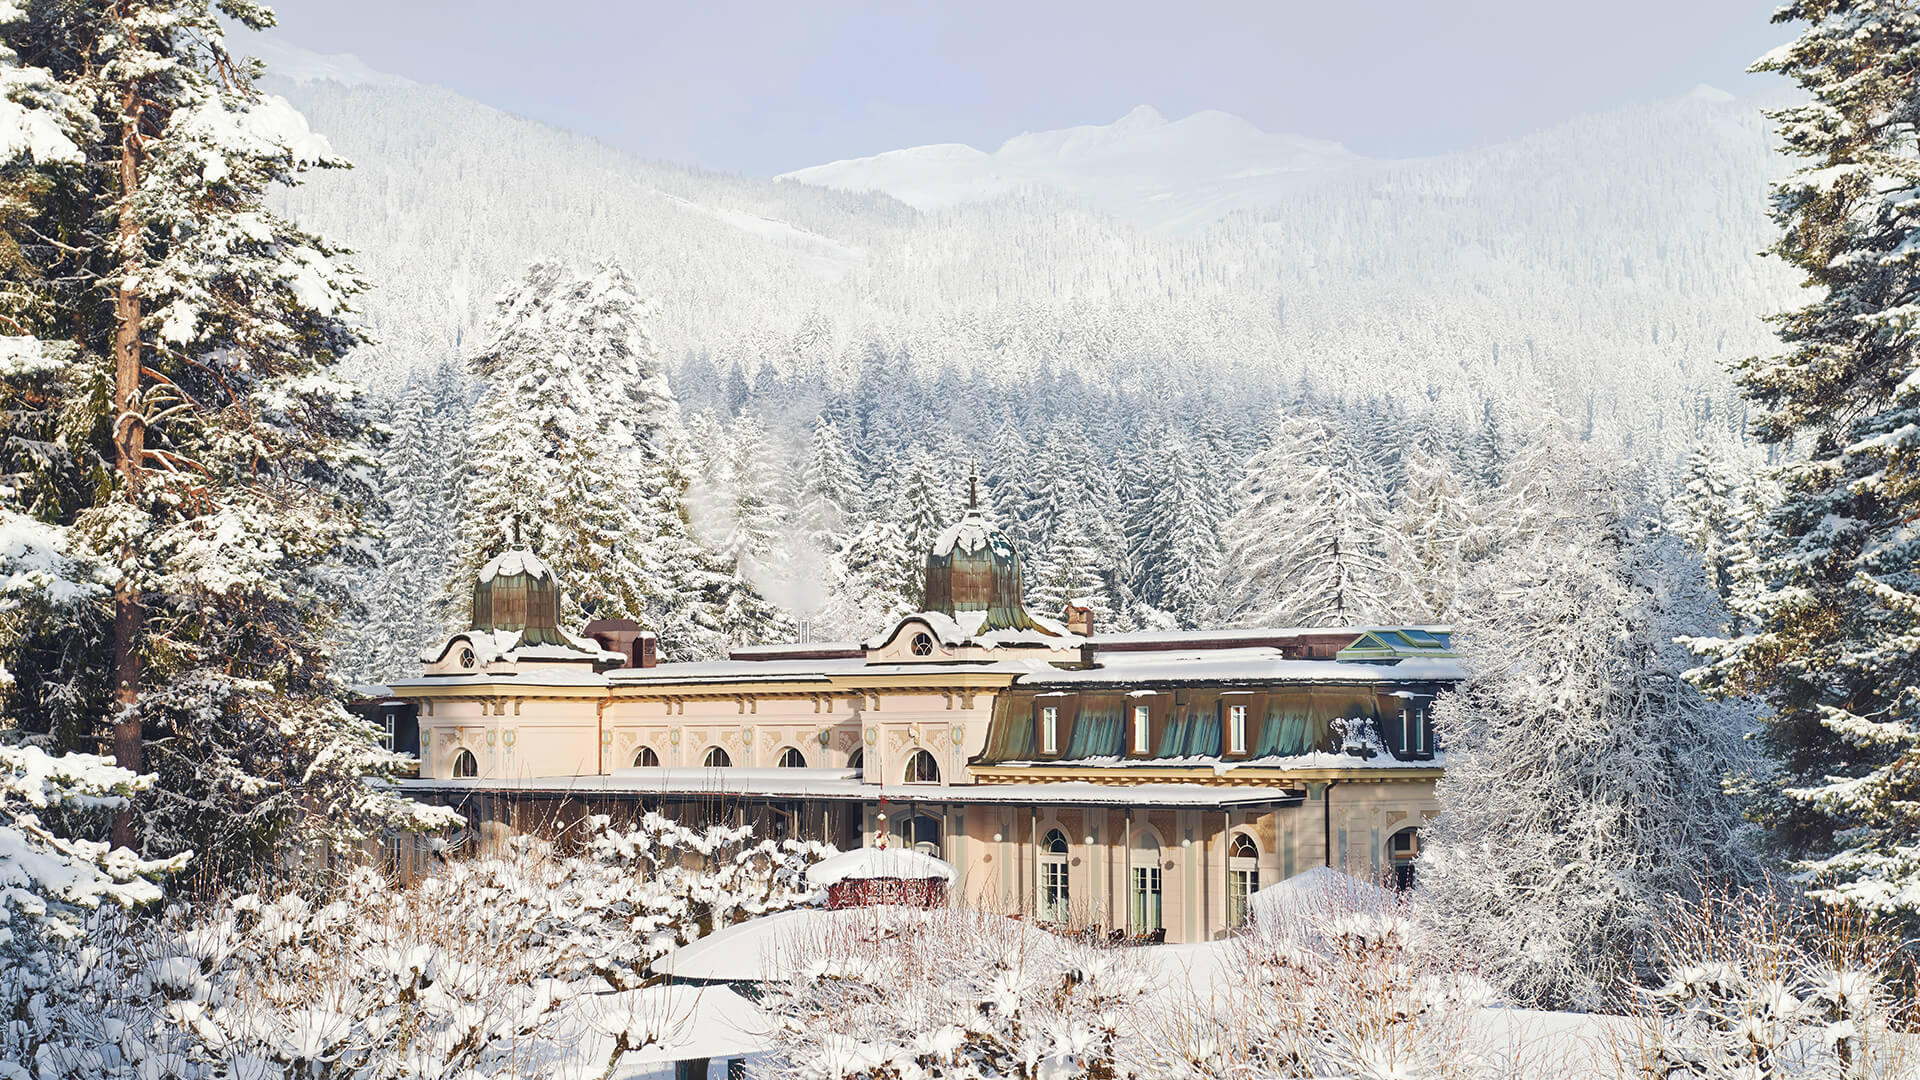 post card like beautiful winter scene of the Belle Epoque pavilion surrounded by snow covered trees and mountains, blue sky in the background